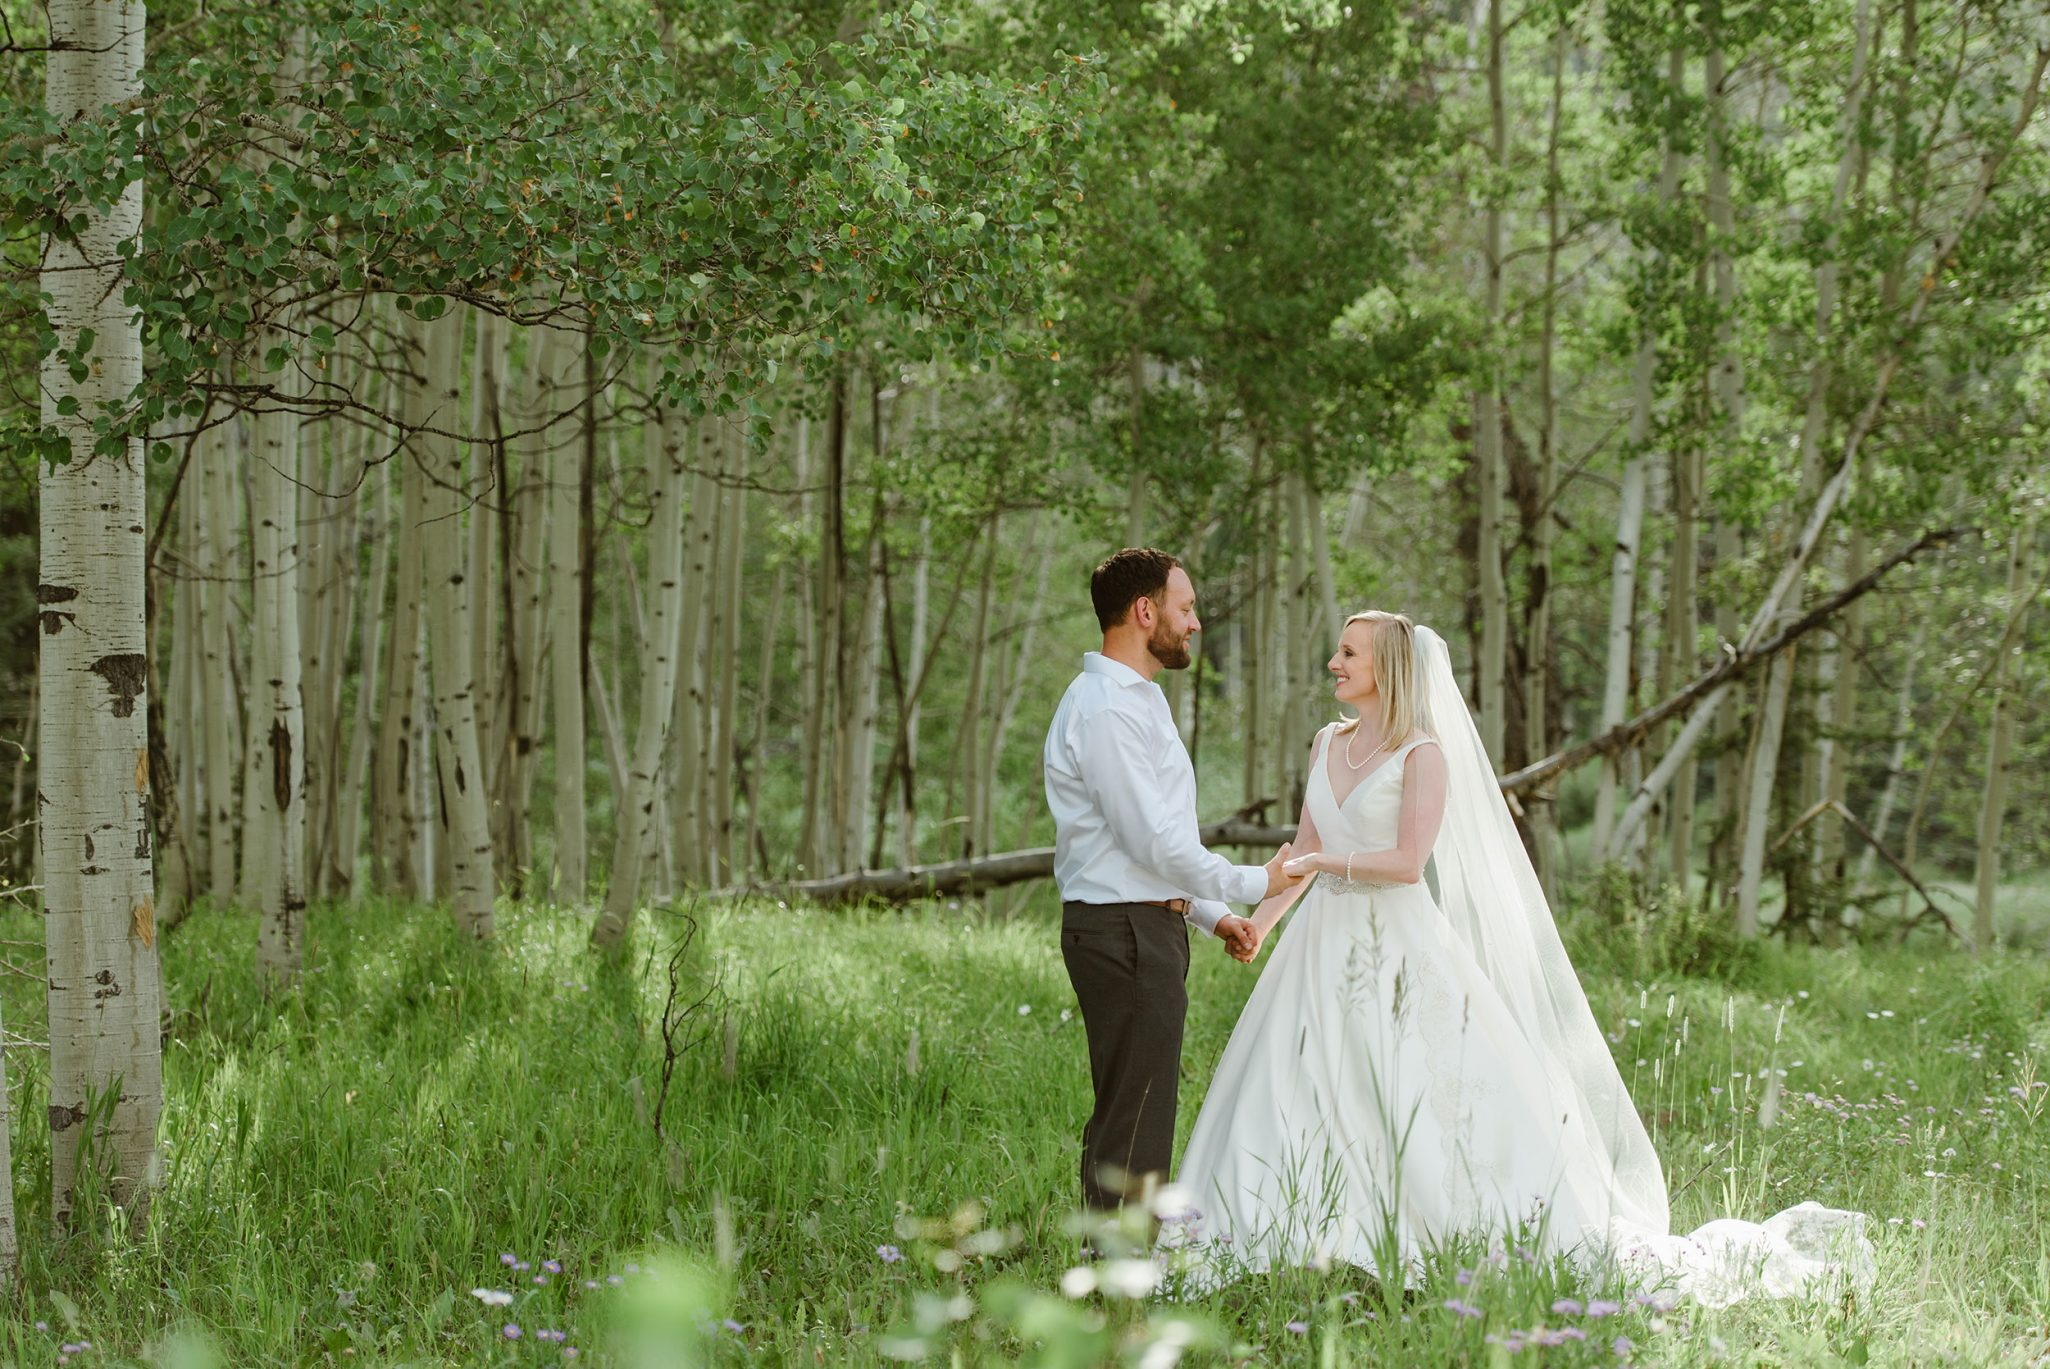 First Look in the forest